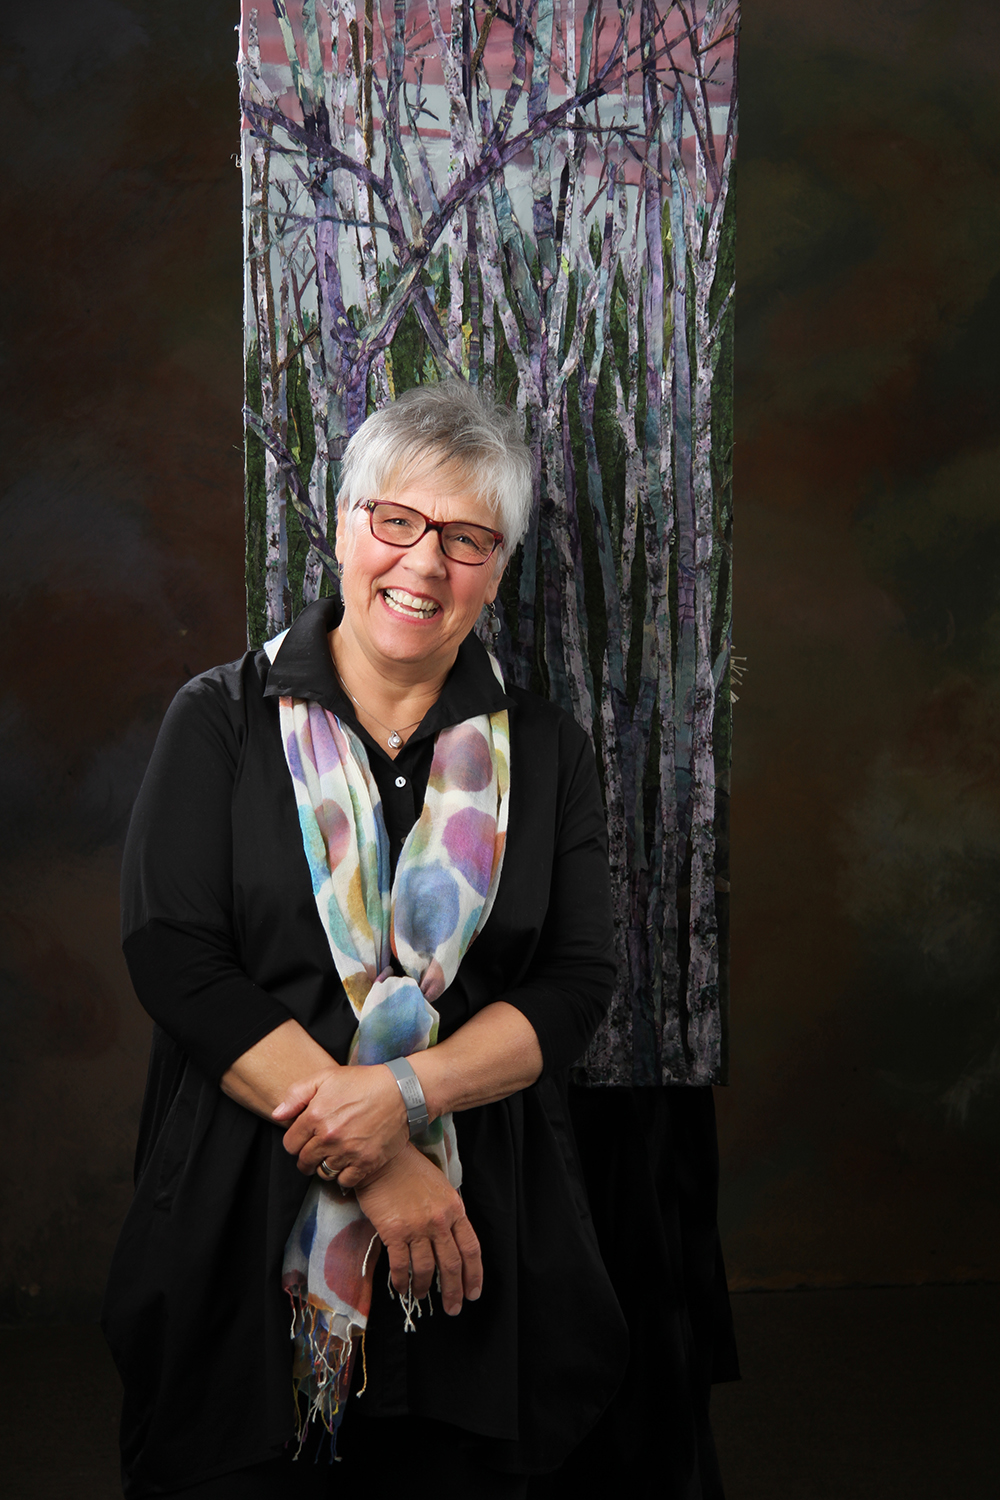 Pam Collins Headshot with Birch Trees